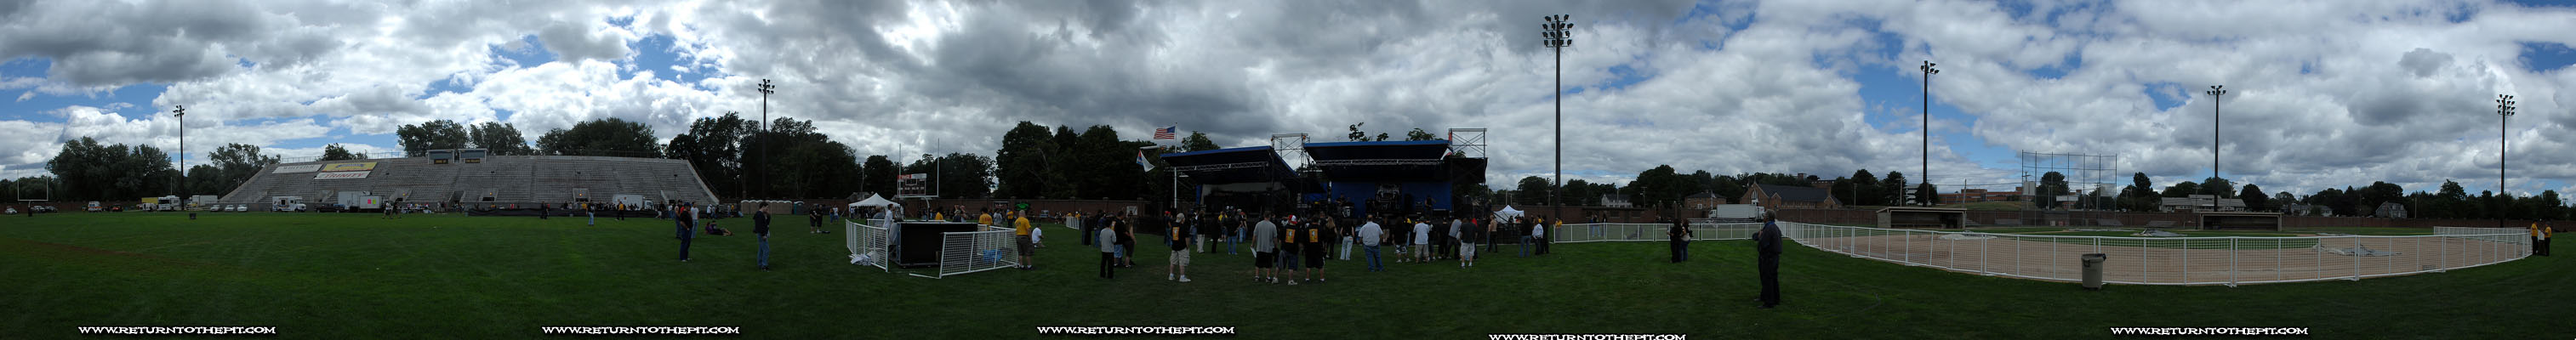 [randomshots on Aug 18, 2007 at Haverhill Stadium (Haverhill, MA)]